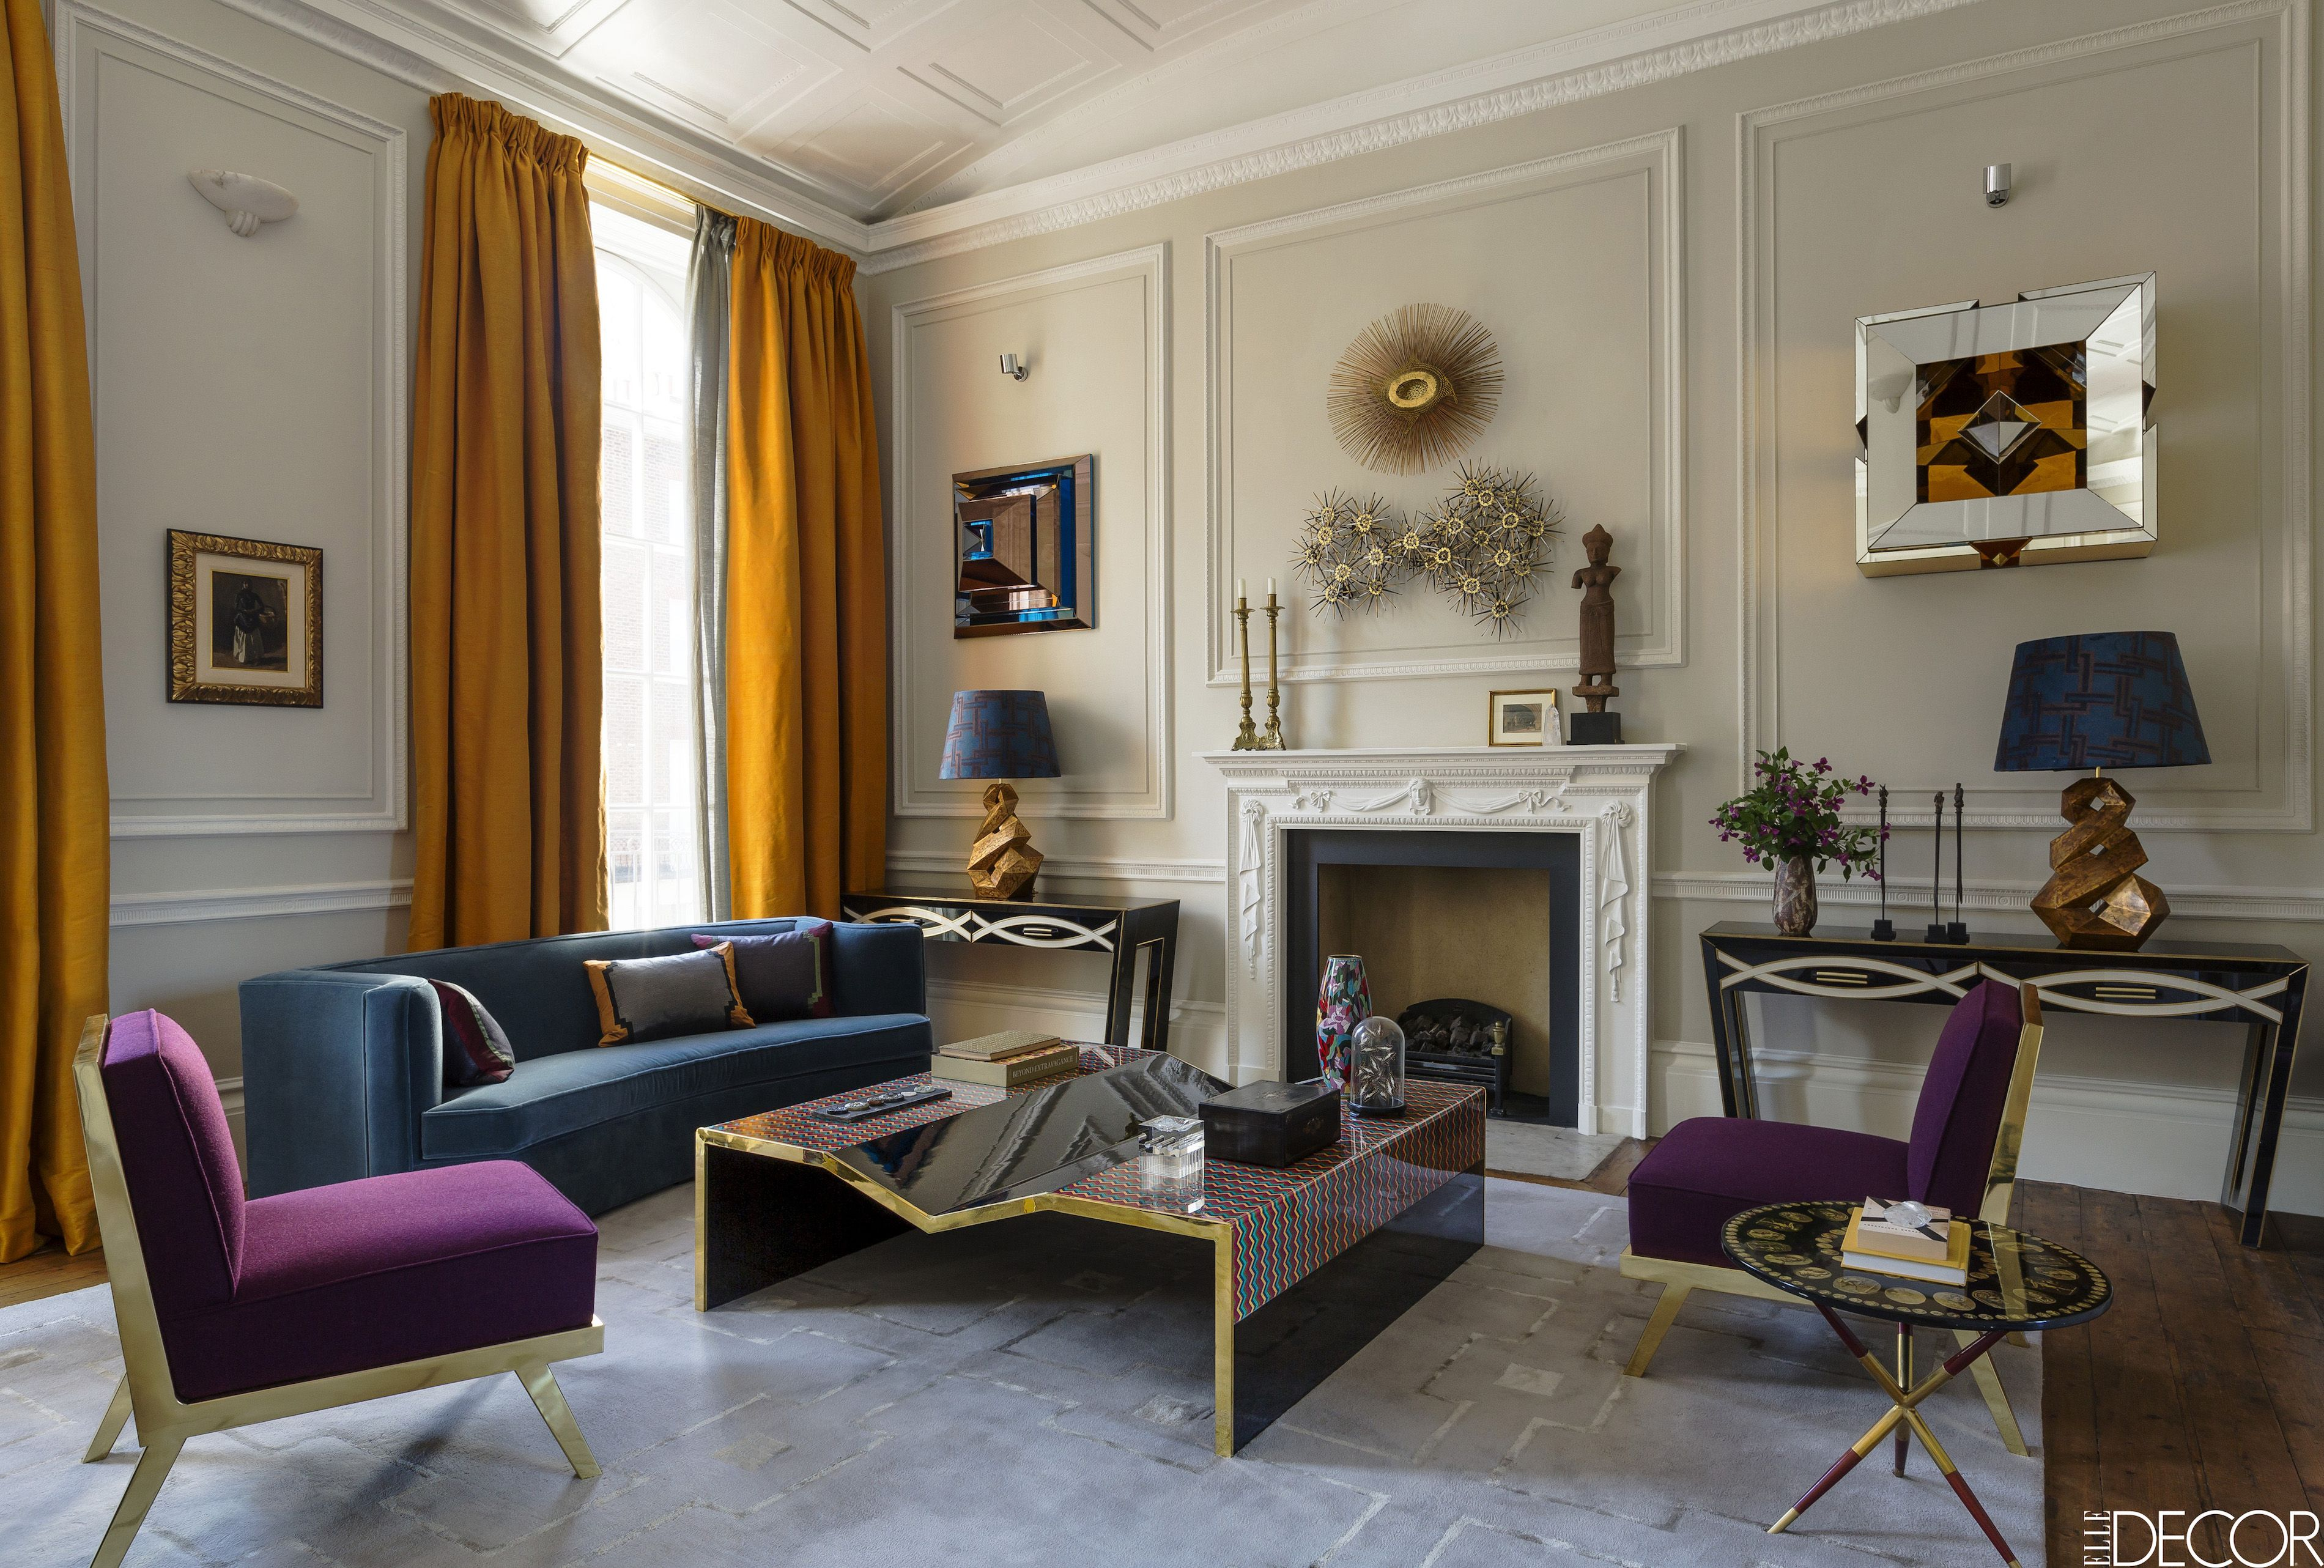 11 things all effortlessly chic homes have in common - Chic Home Design